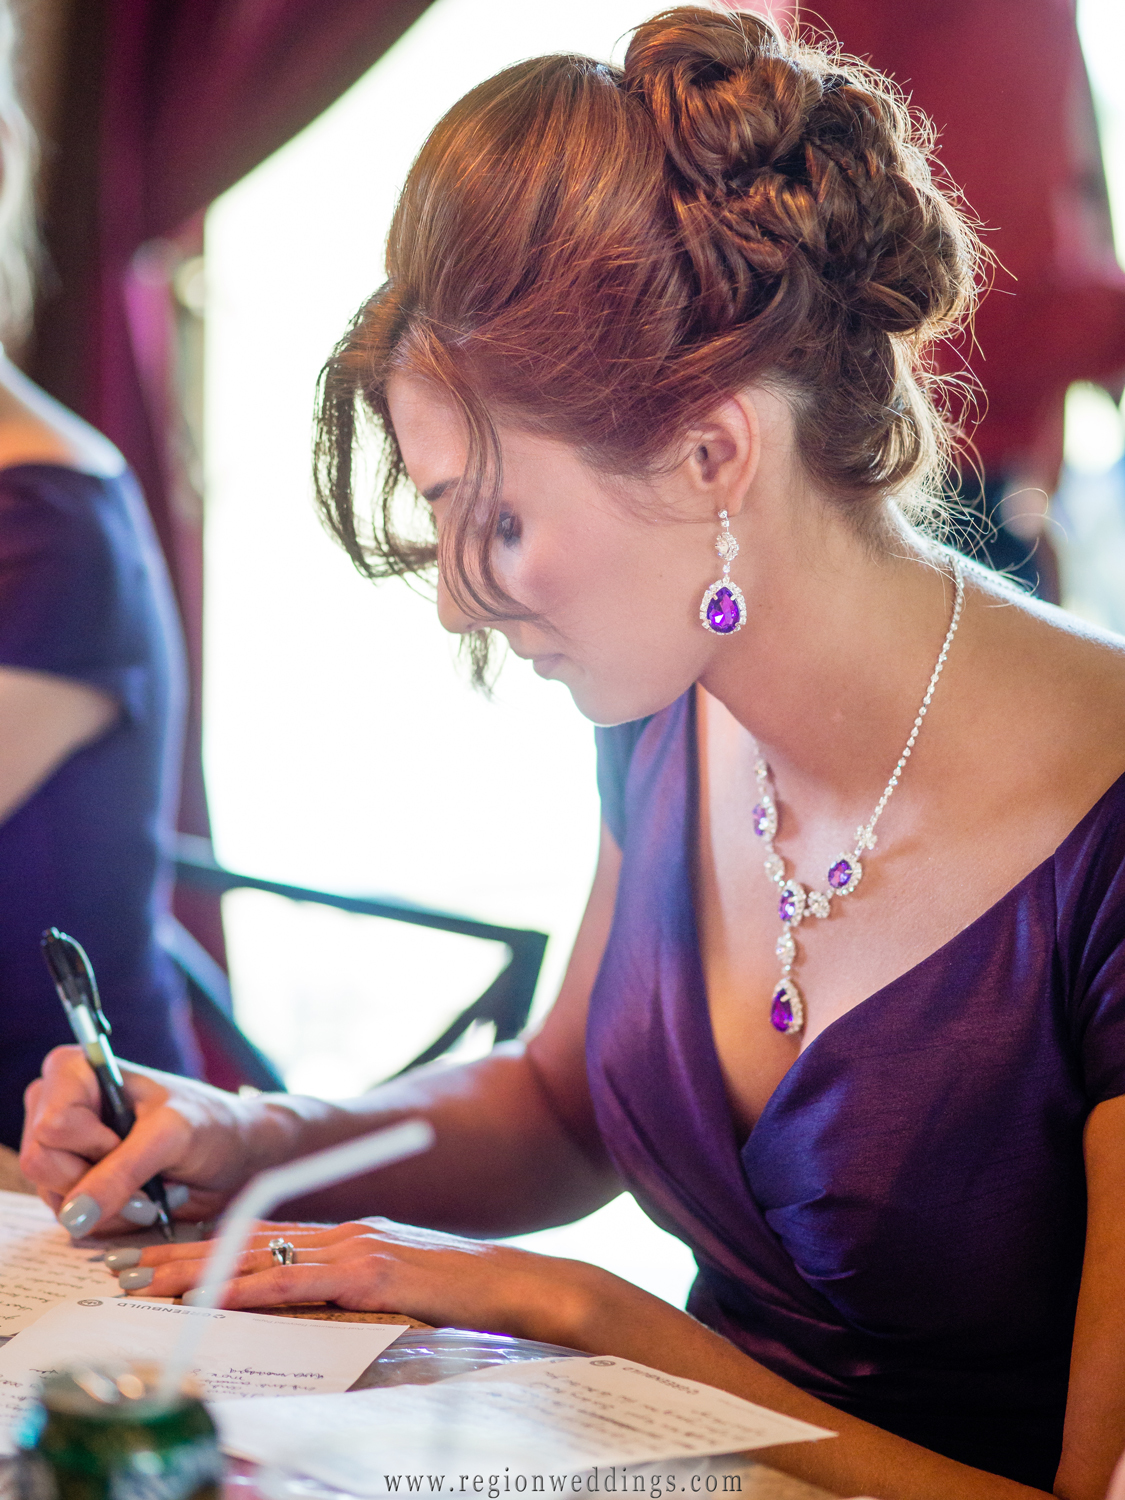 The matron of honor writes her speech for her sister's wedding.